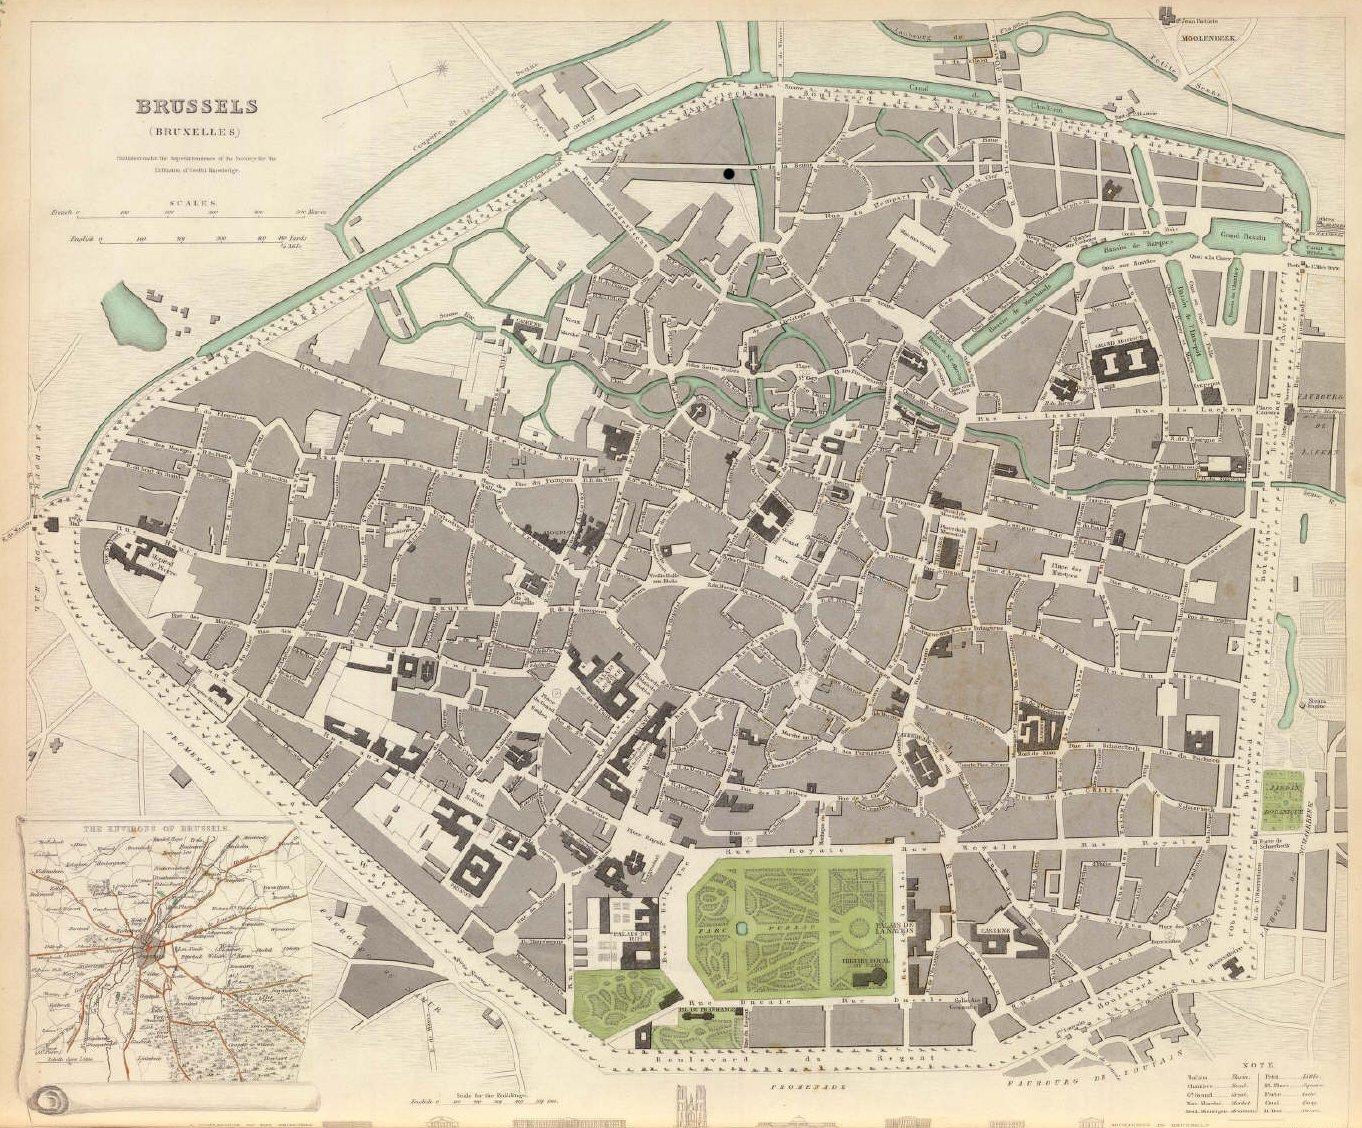 Brussels 1837 Jpeg large map